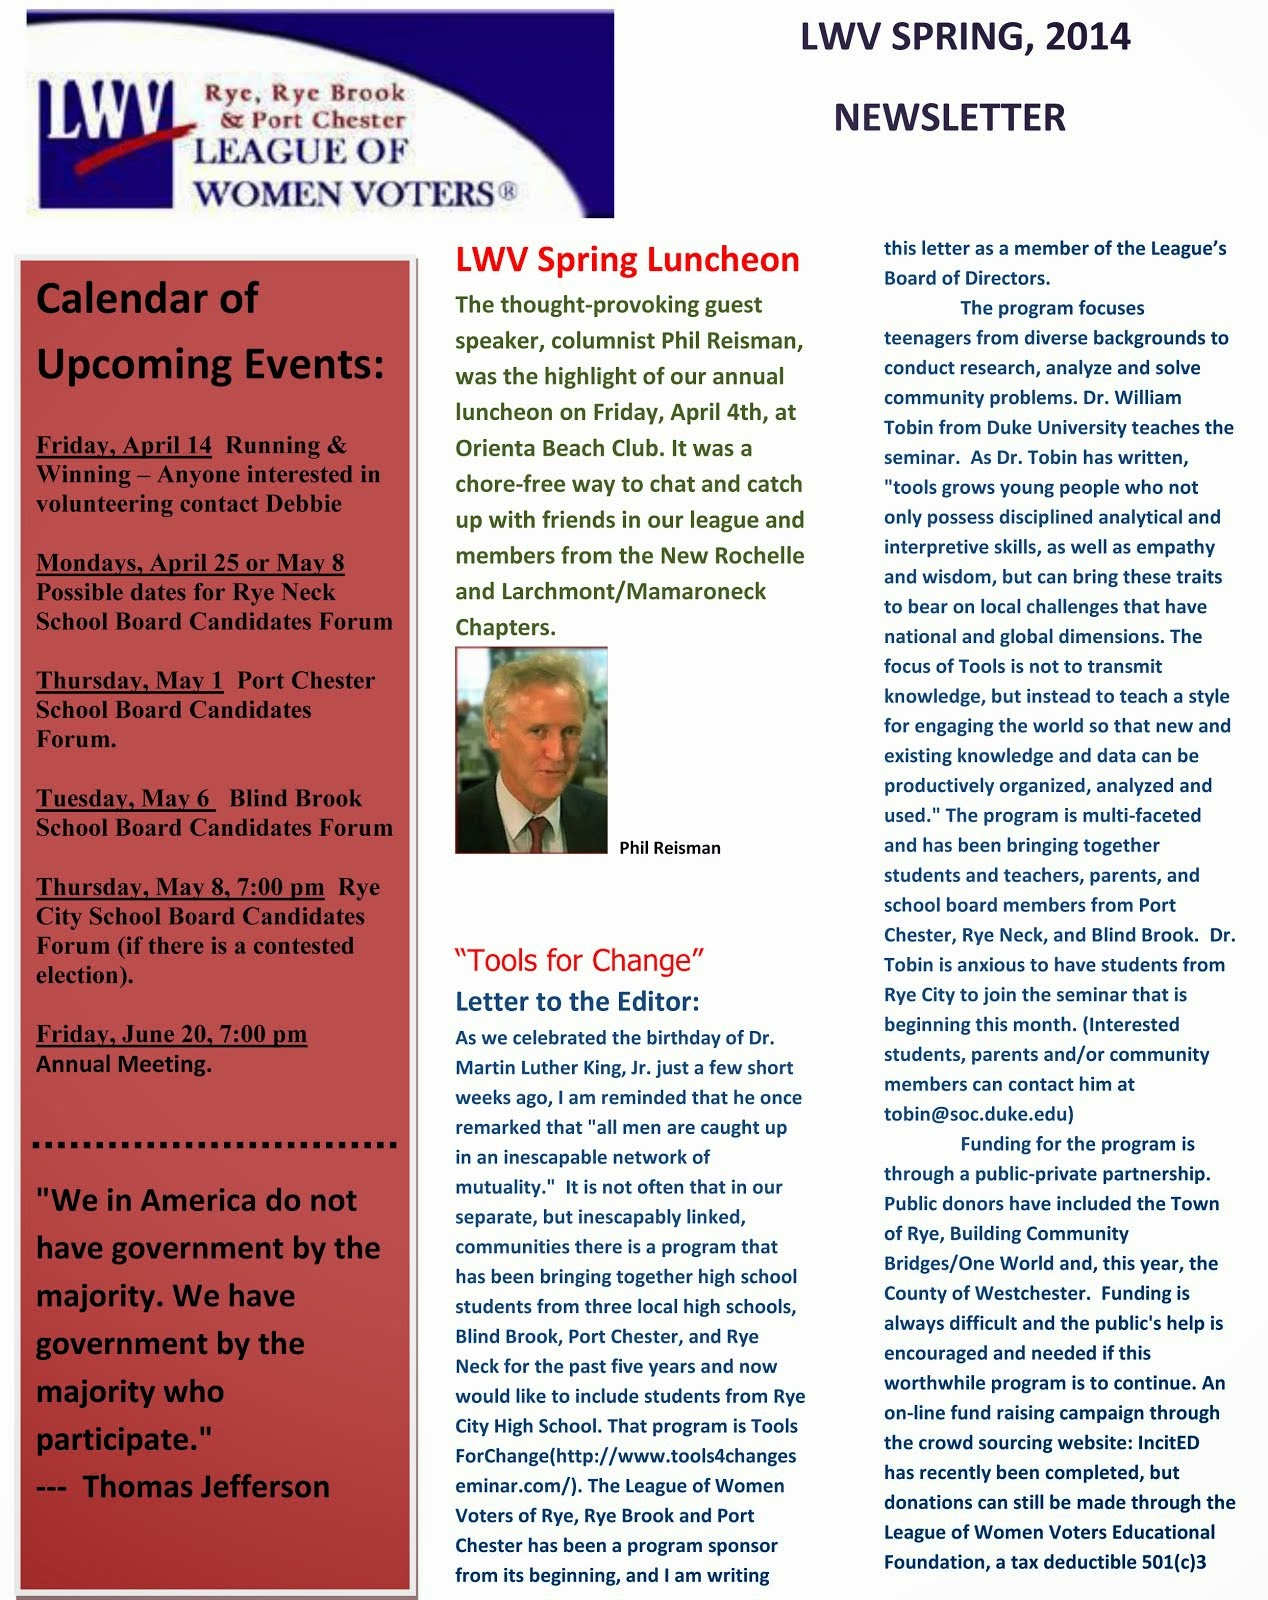 LWV SPRING NEWSLETTER